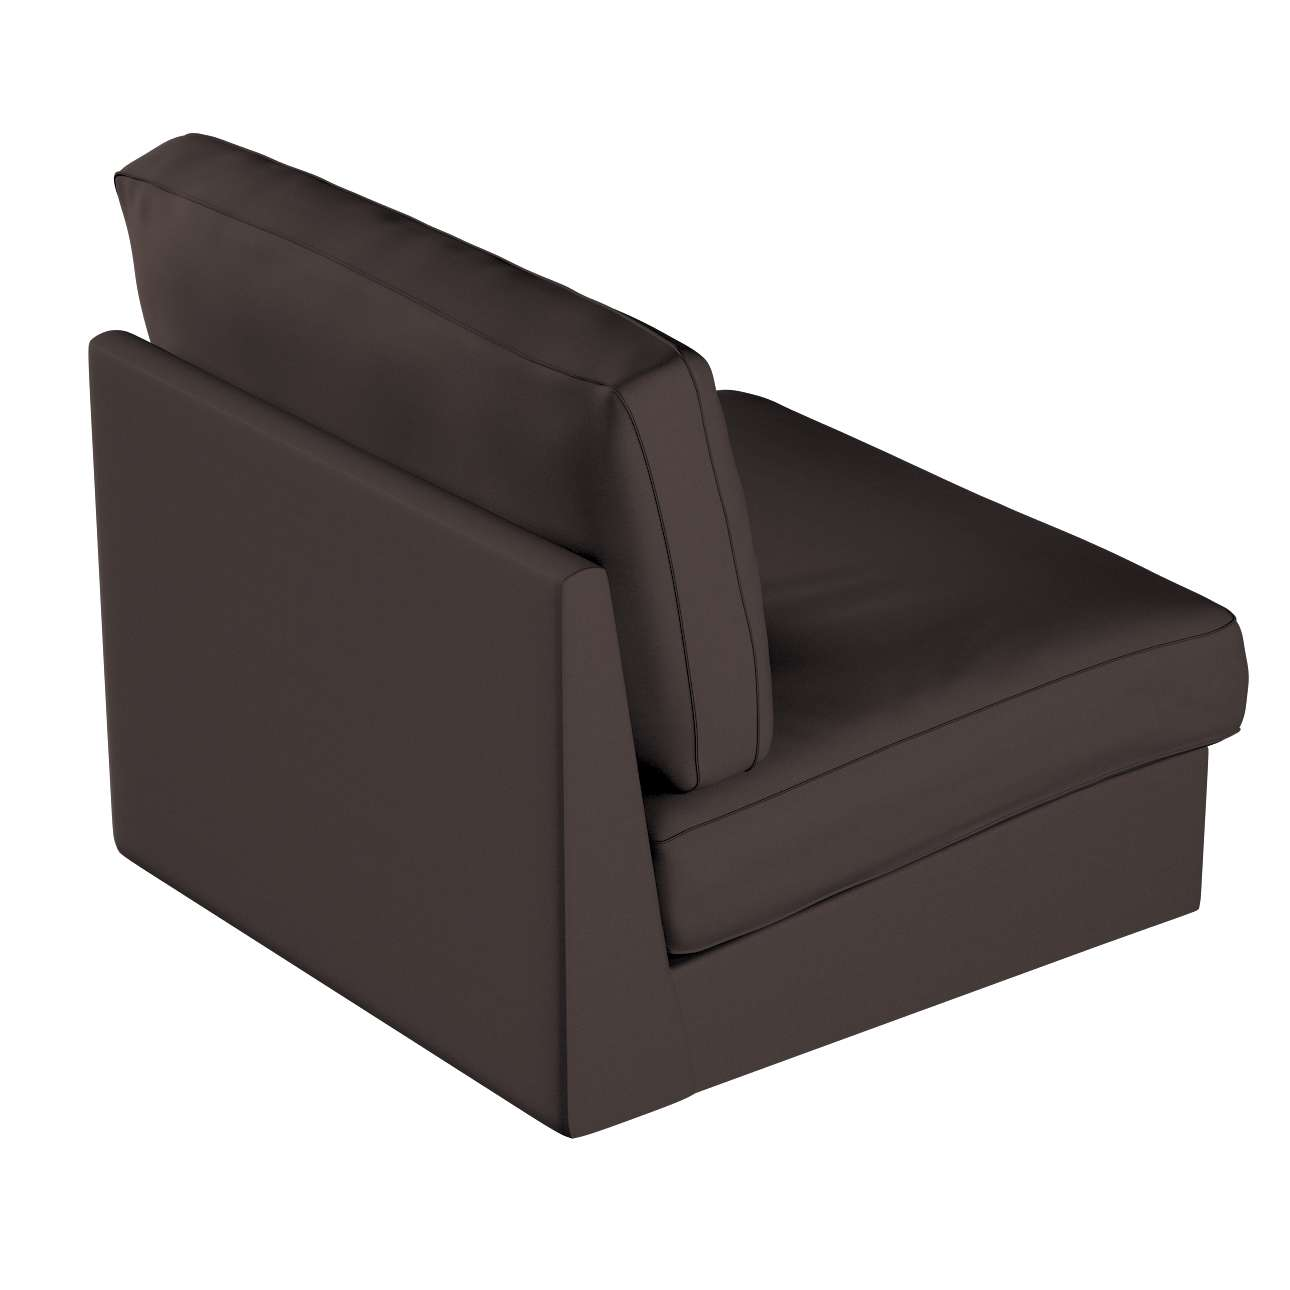 Kivik armchair cover, chocolate, 702-03, Kivik armchair ...